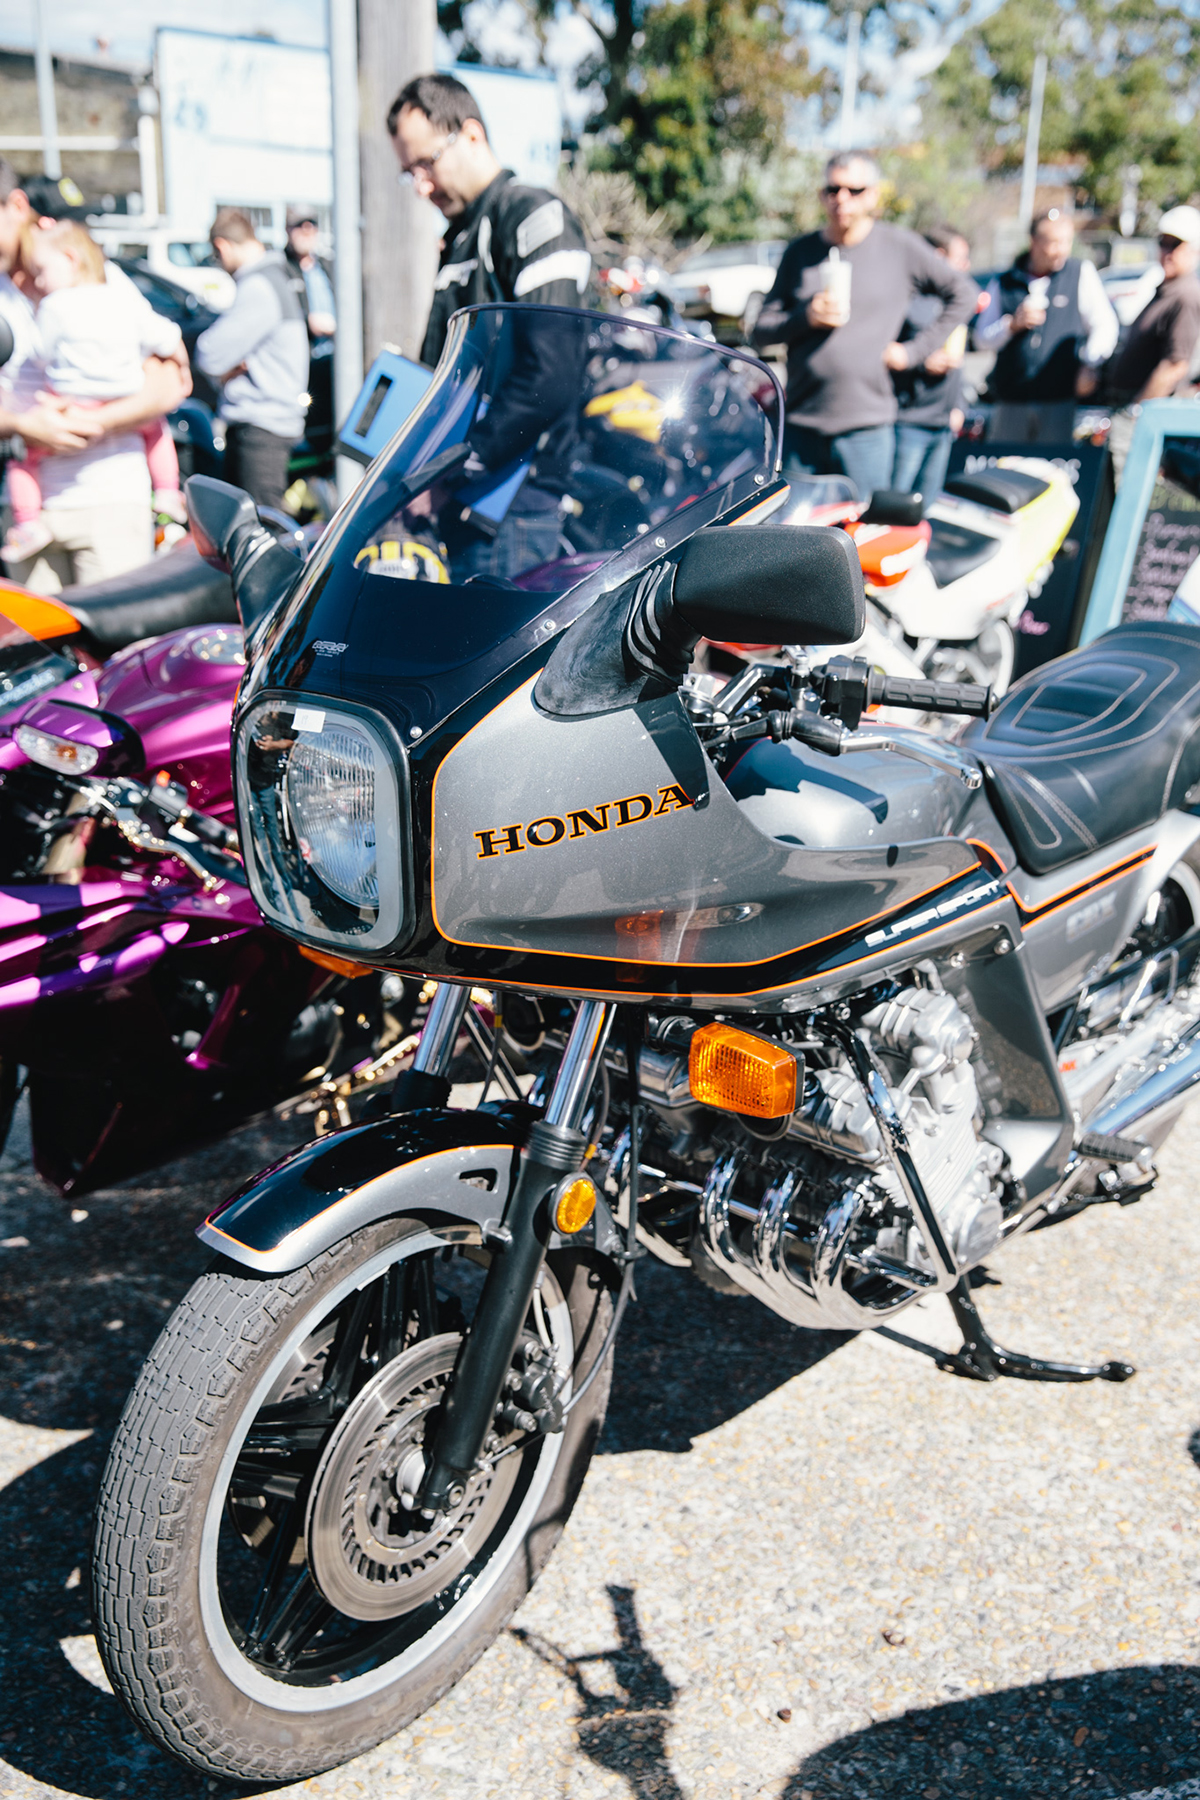 Surfside_Motorcycle_Japanese_8368